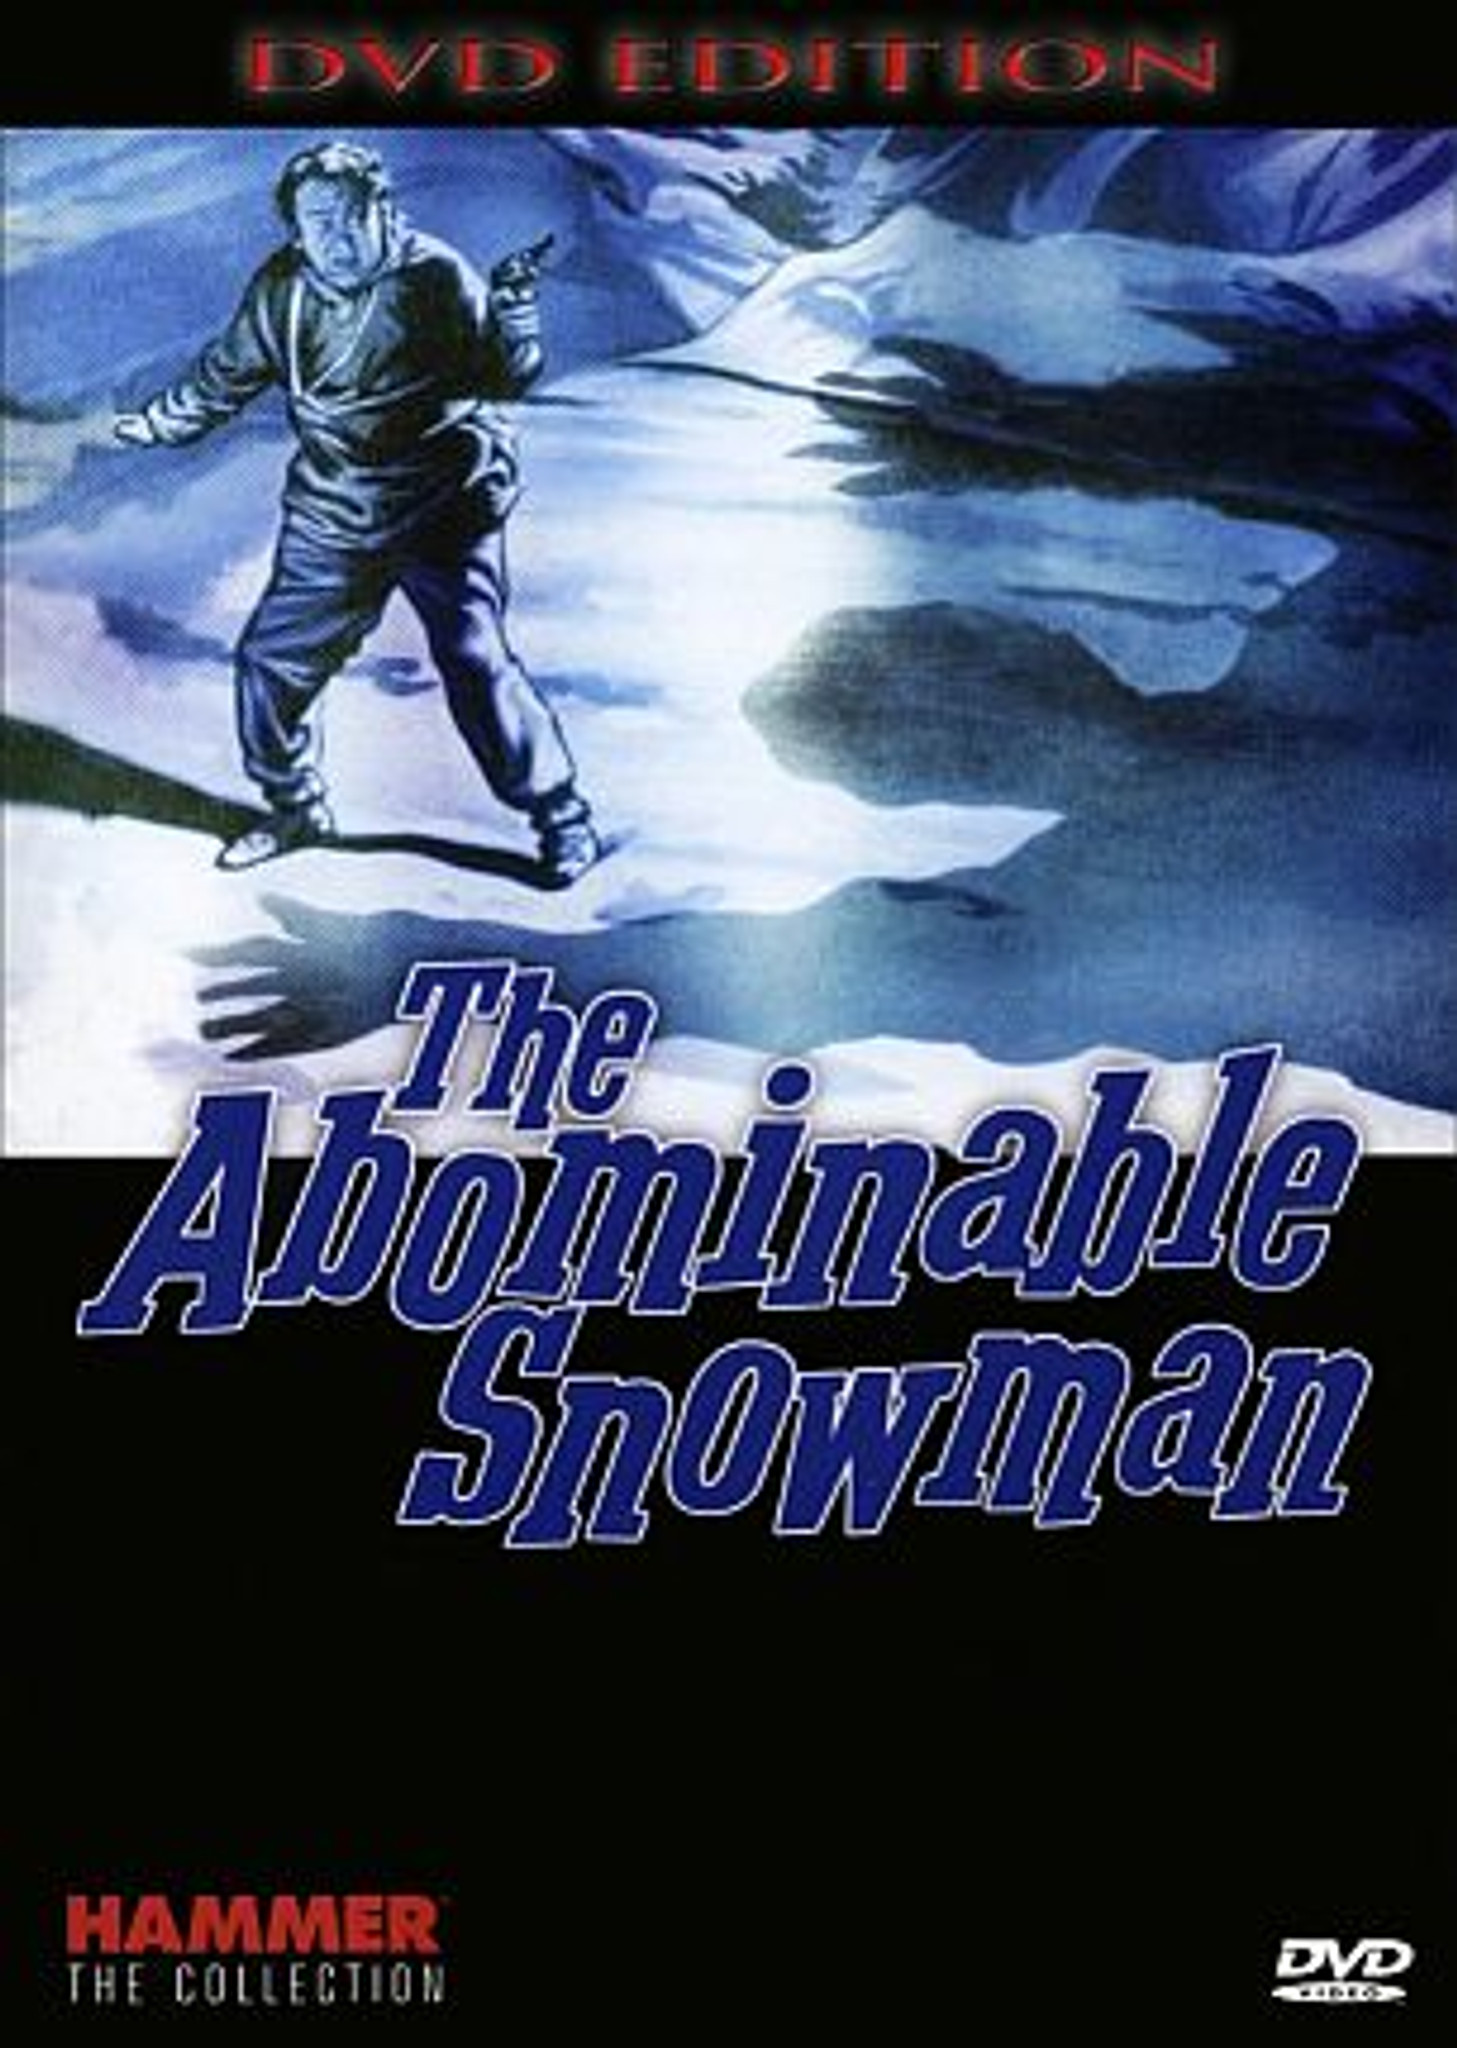 The Abominable Snowman Dvd